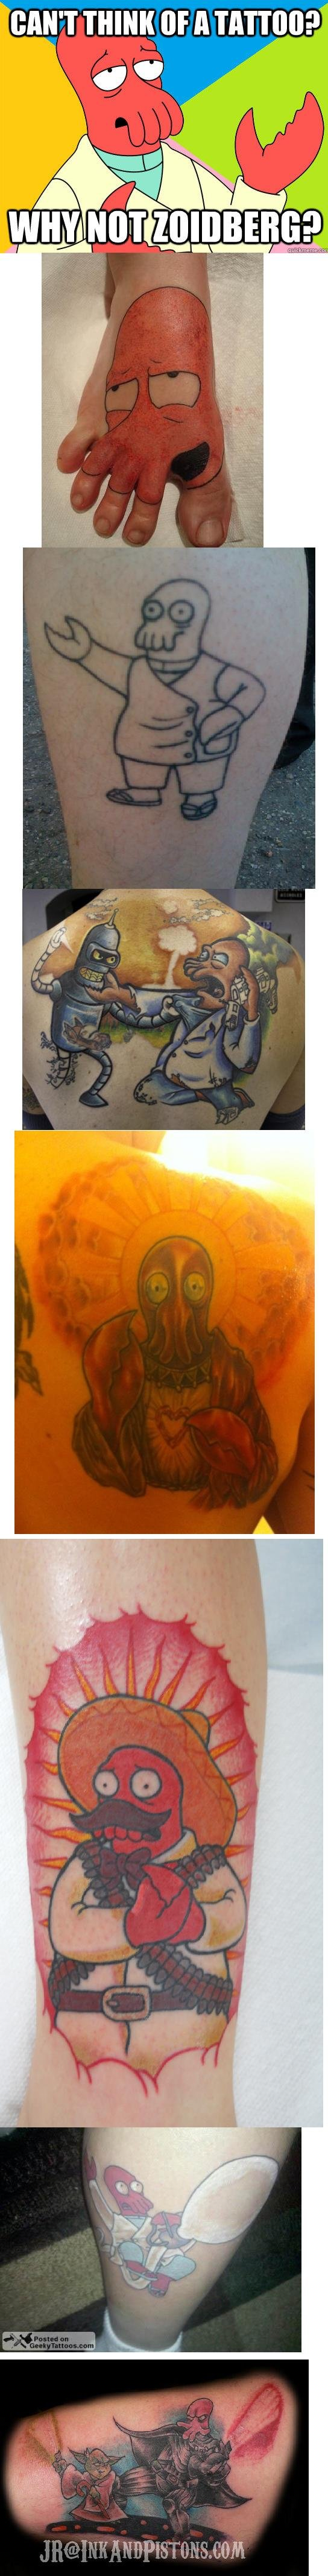 Need a tattoo?. (V) (;,,;) (V). THINK BF ll ?,. I can't tell if Yoda vs Zoidberg is the worst idea for a tattoo or the best idea for a tattoo that I've ever seen...